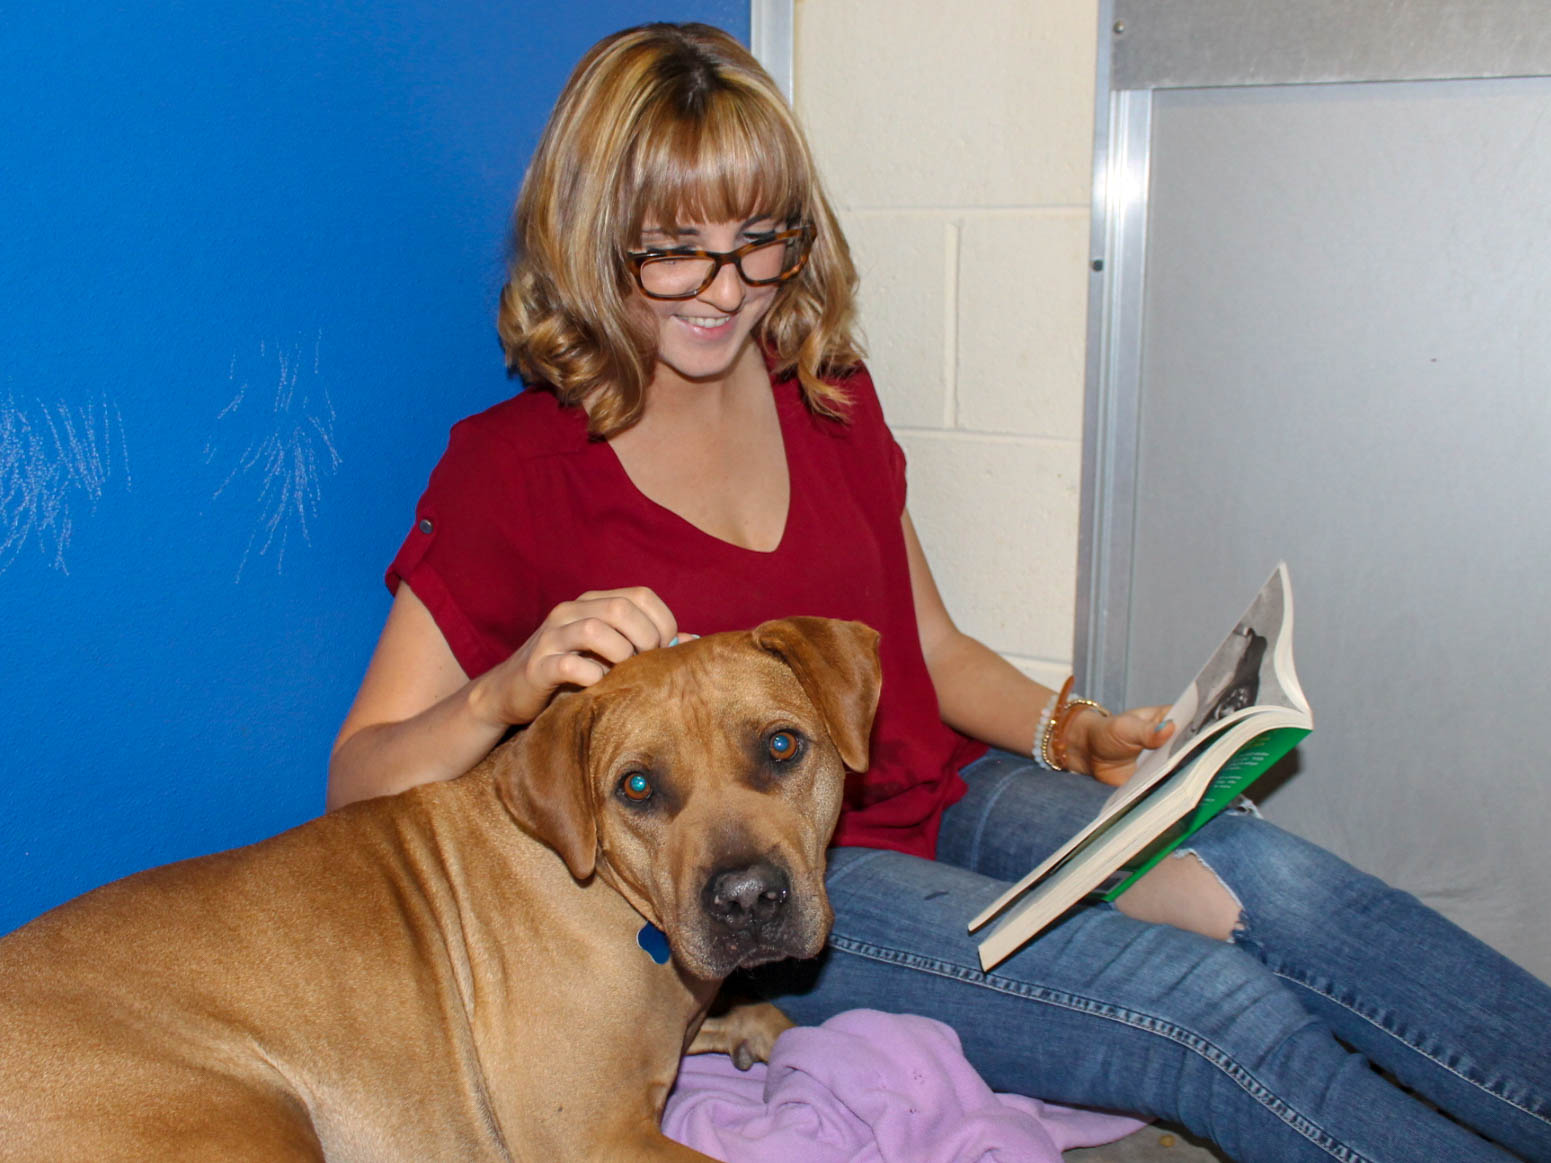 Dog and girl reading book together